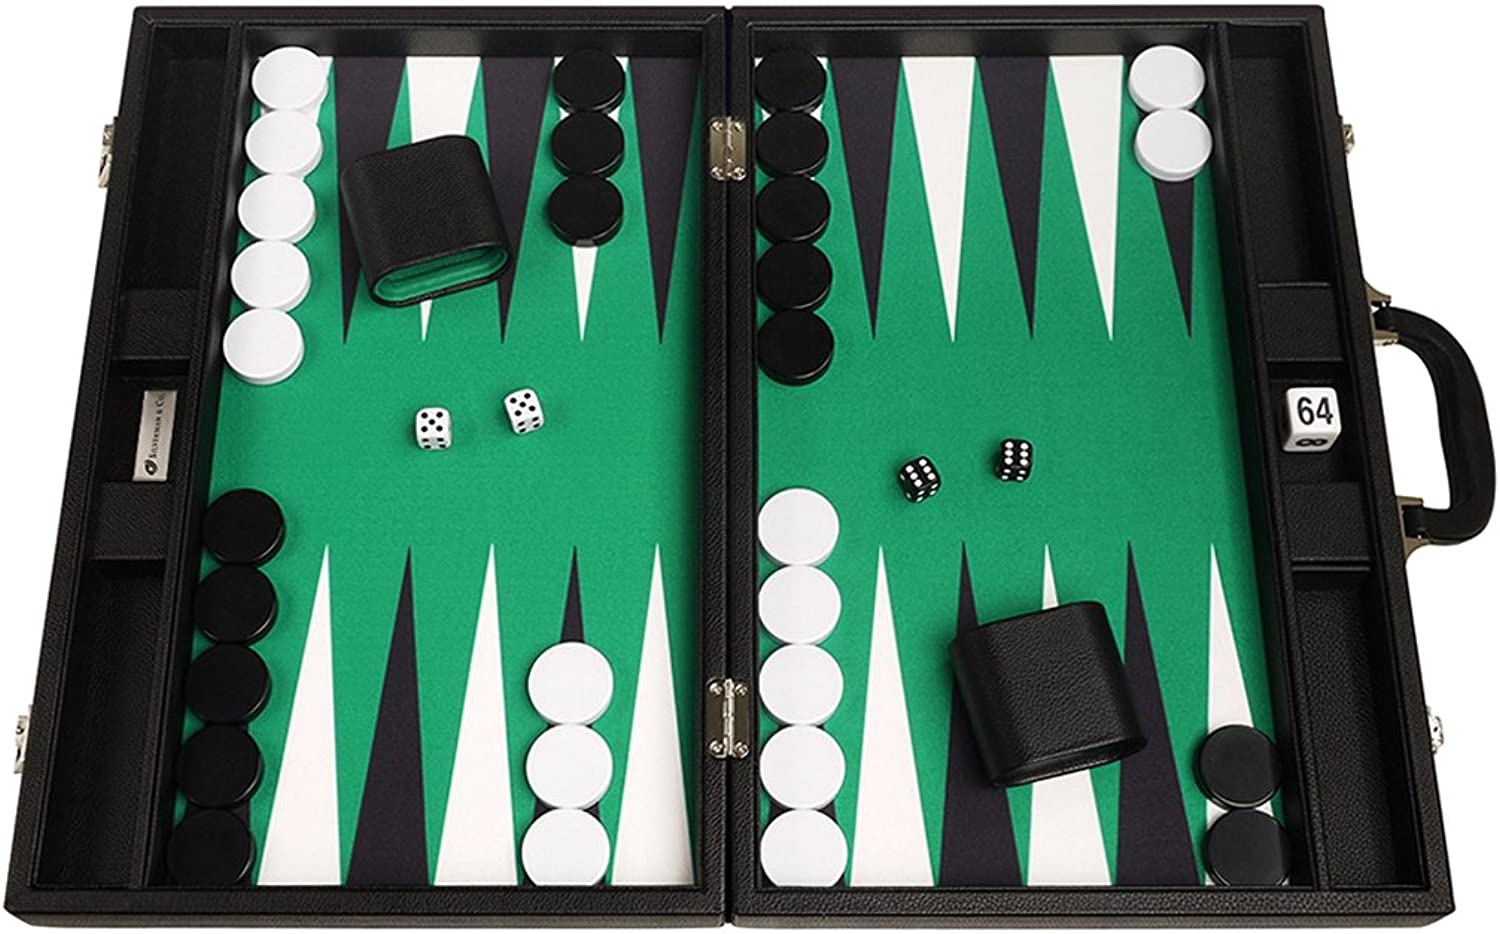 19-inch Premium Backgammon Set - Large Size - Black Board, Green Playing Surface, Black and White Points